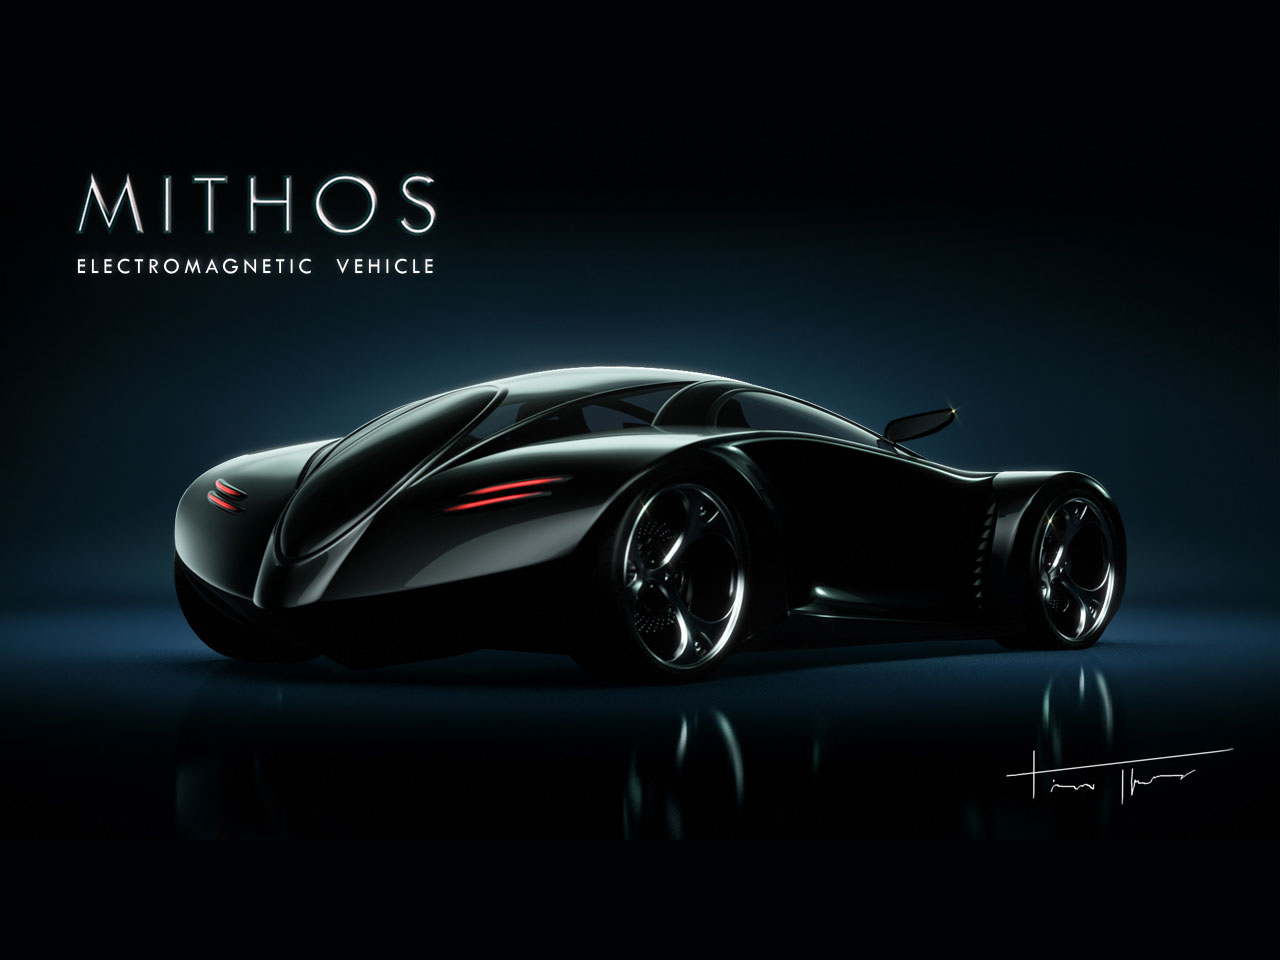 mithos electromagnetic concept vehicle future sports car divine glitz. Black Bedroom Furniture Sets. Home Design Ideas